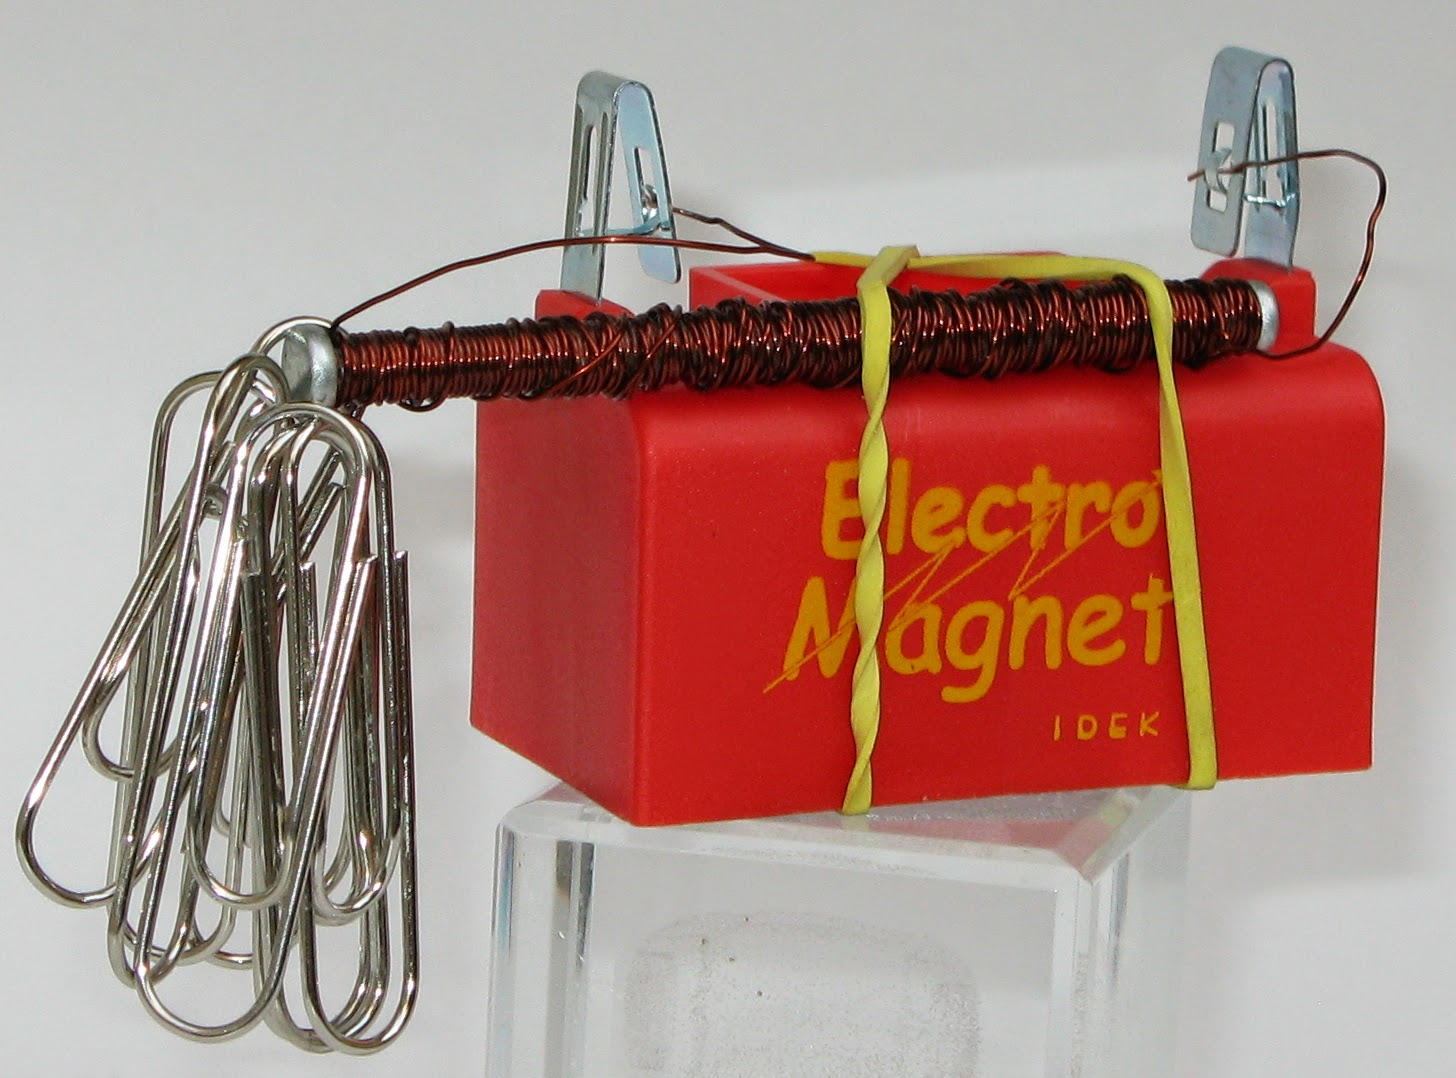 Innovative design educational kits the kit consists of battery box copper wire rod copper contacts and a switch its a do it yourself kit with an instruction manual which gives a step by solutioingenieria Gallery